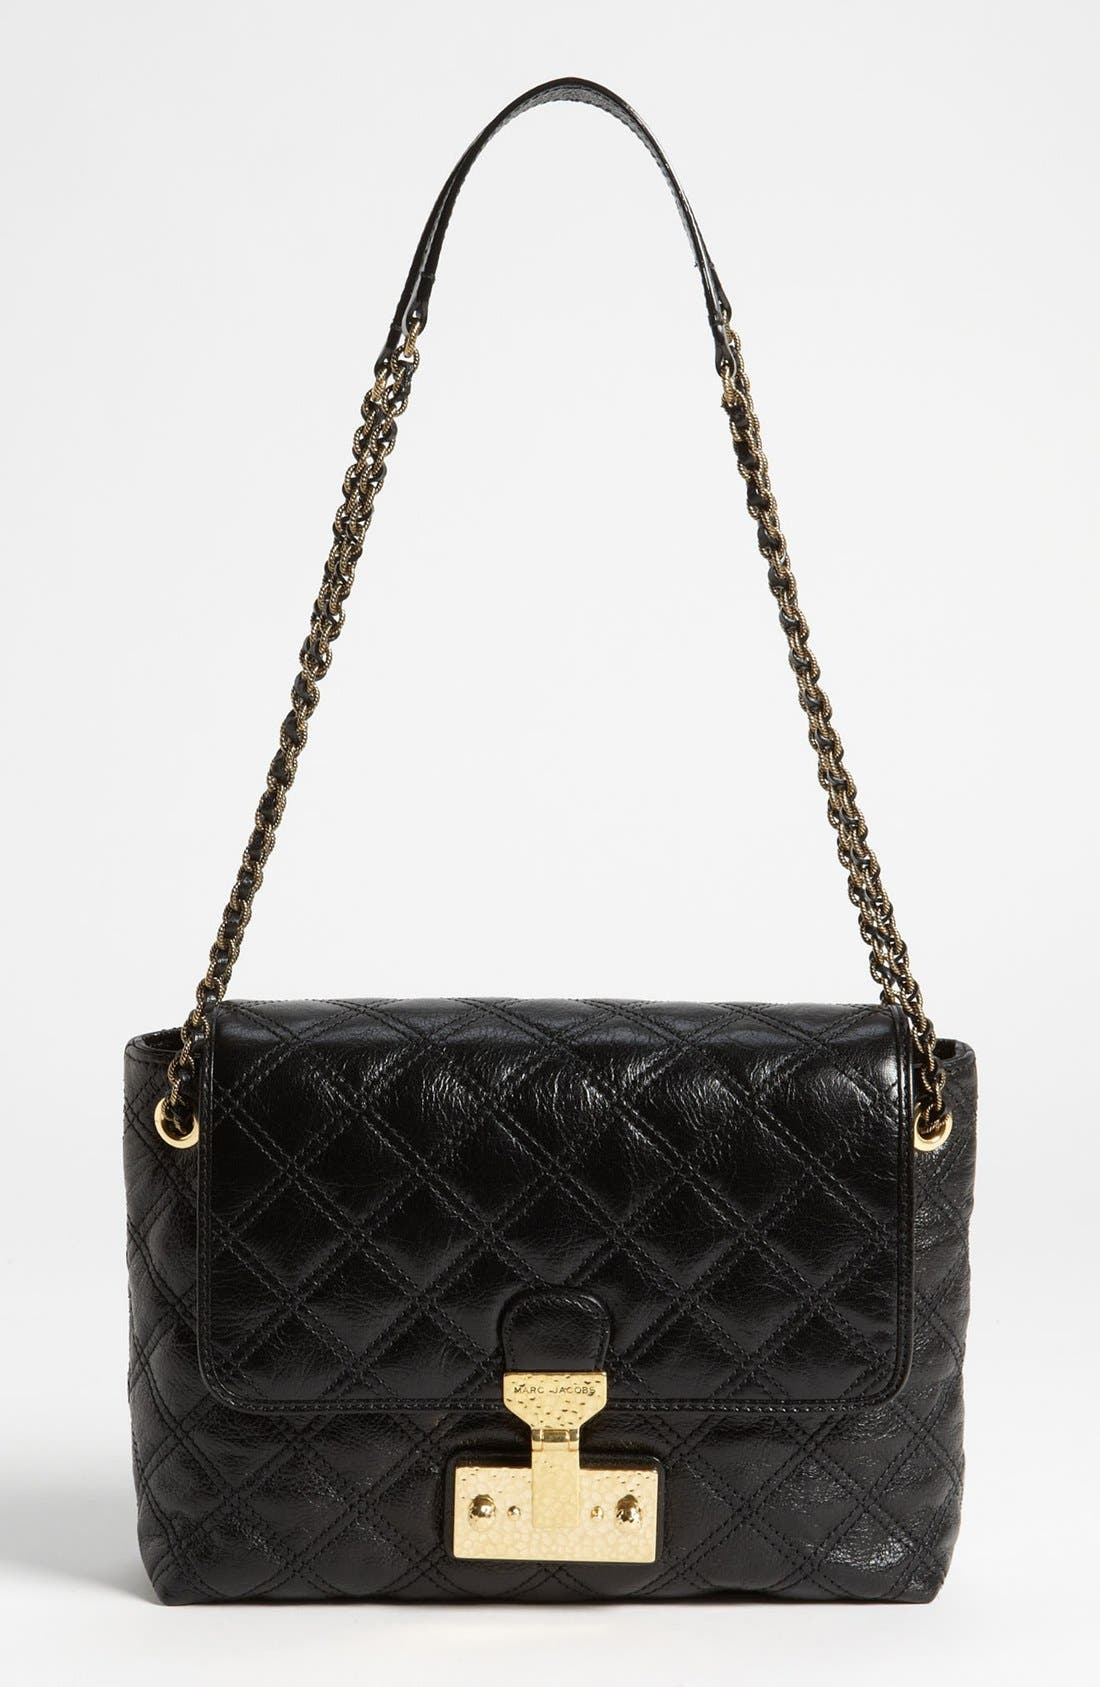 Alternate Image 1 Selected - MARC JACOBS 'Large Baroque Single' Leather Shoulder Bag